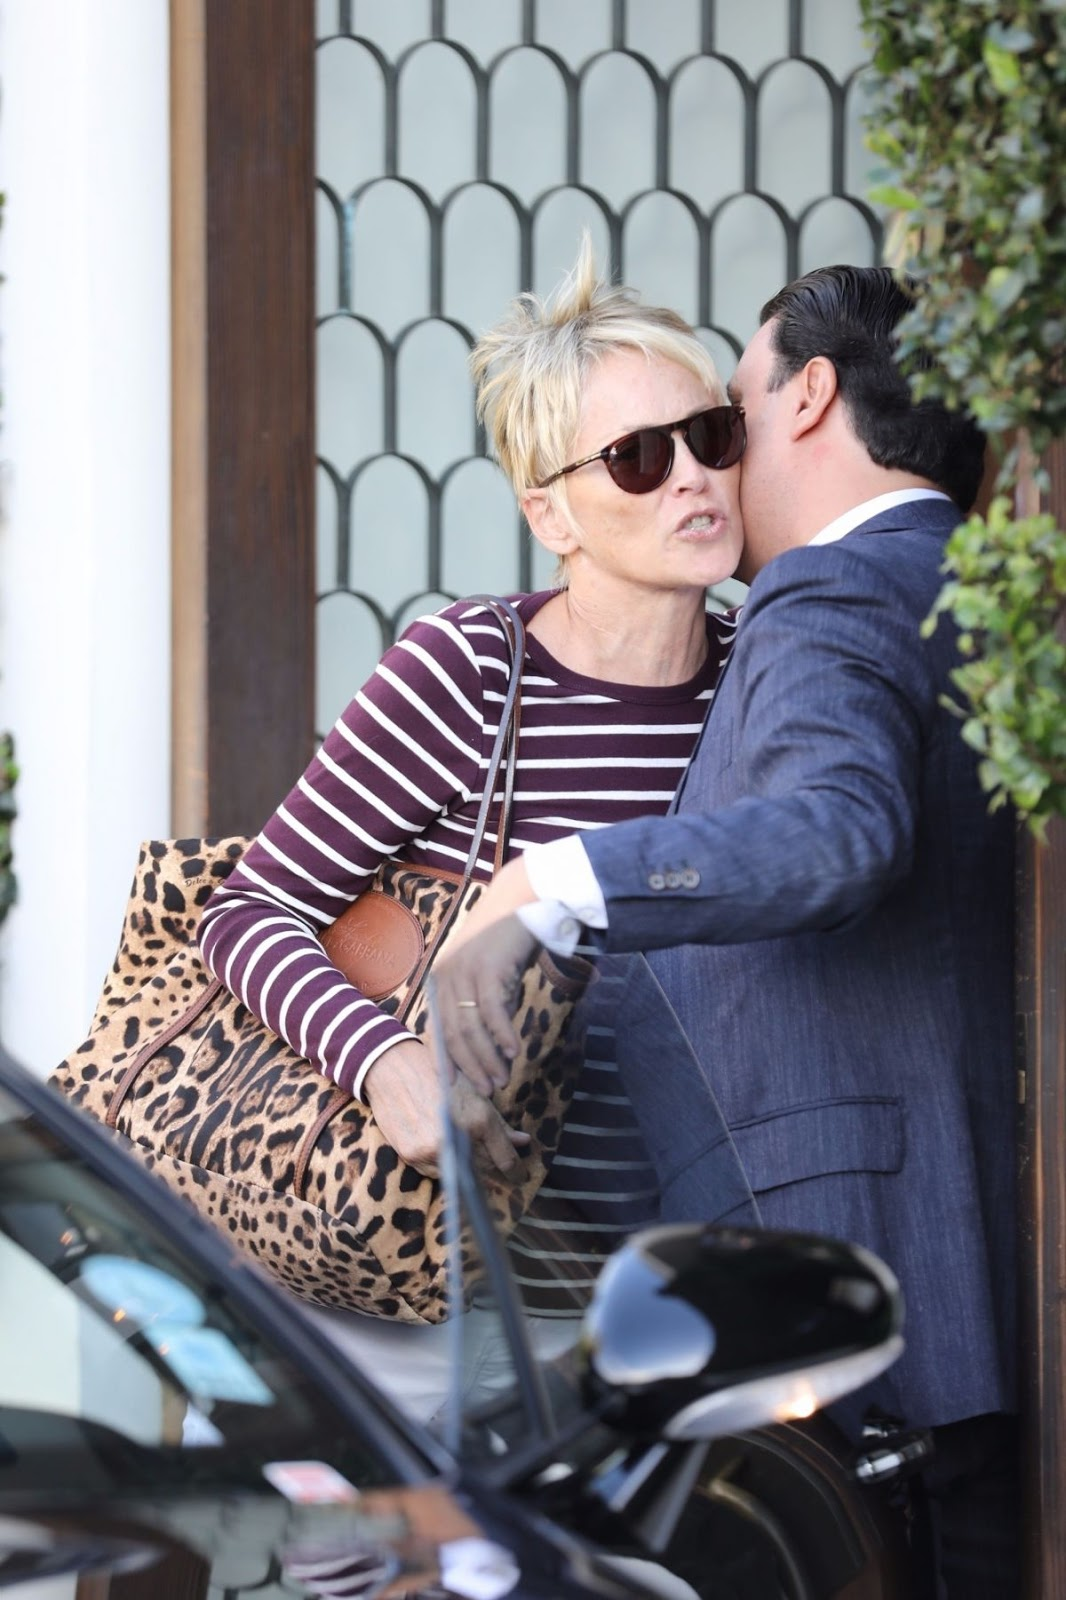 Photos of Sharon Stone riding in her car at Cecconi's in West Hollywood